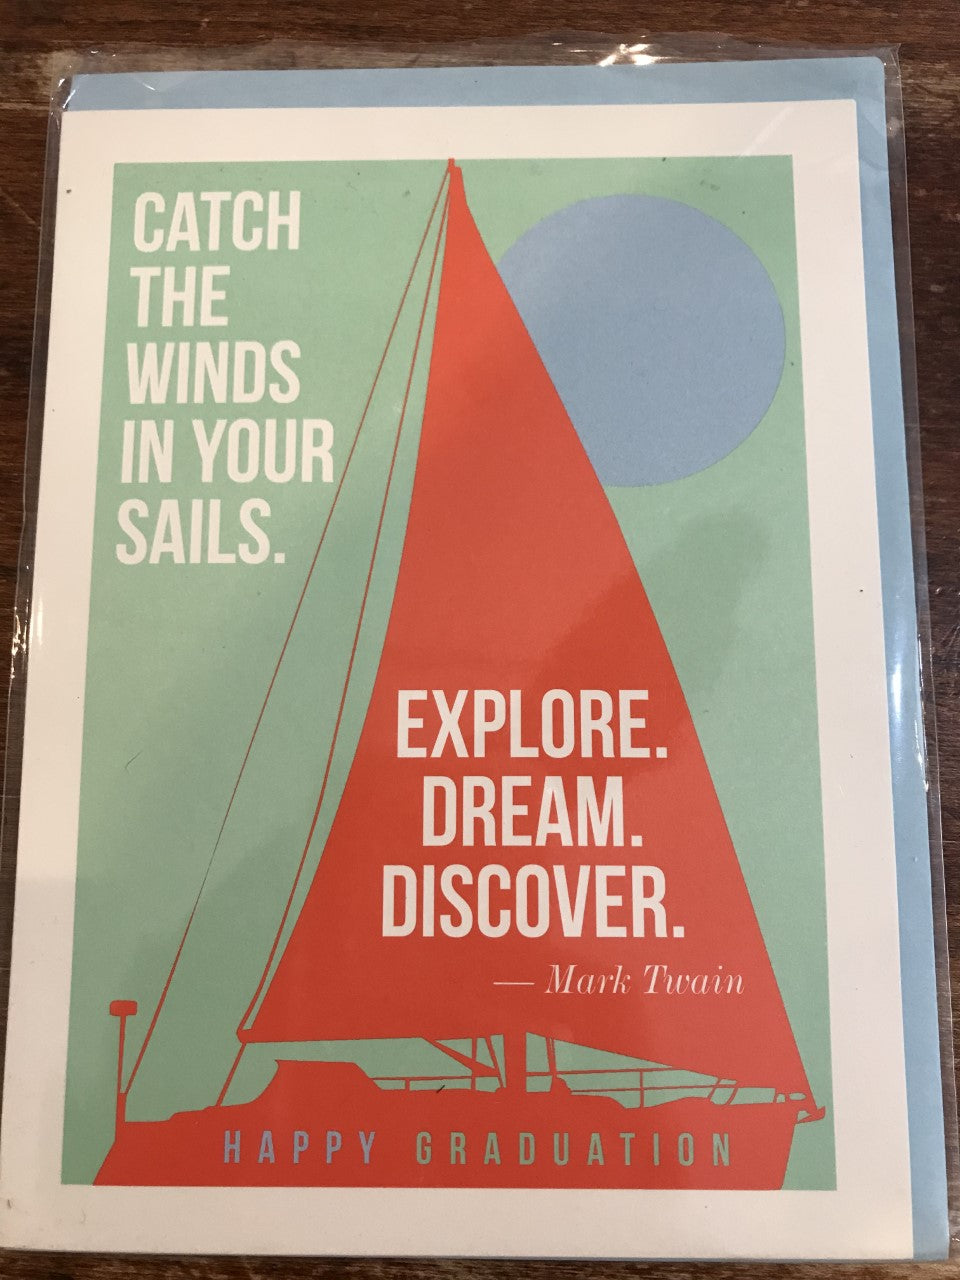 J. Falkner Graduation Card-Explore Dream Discover